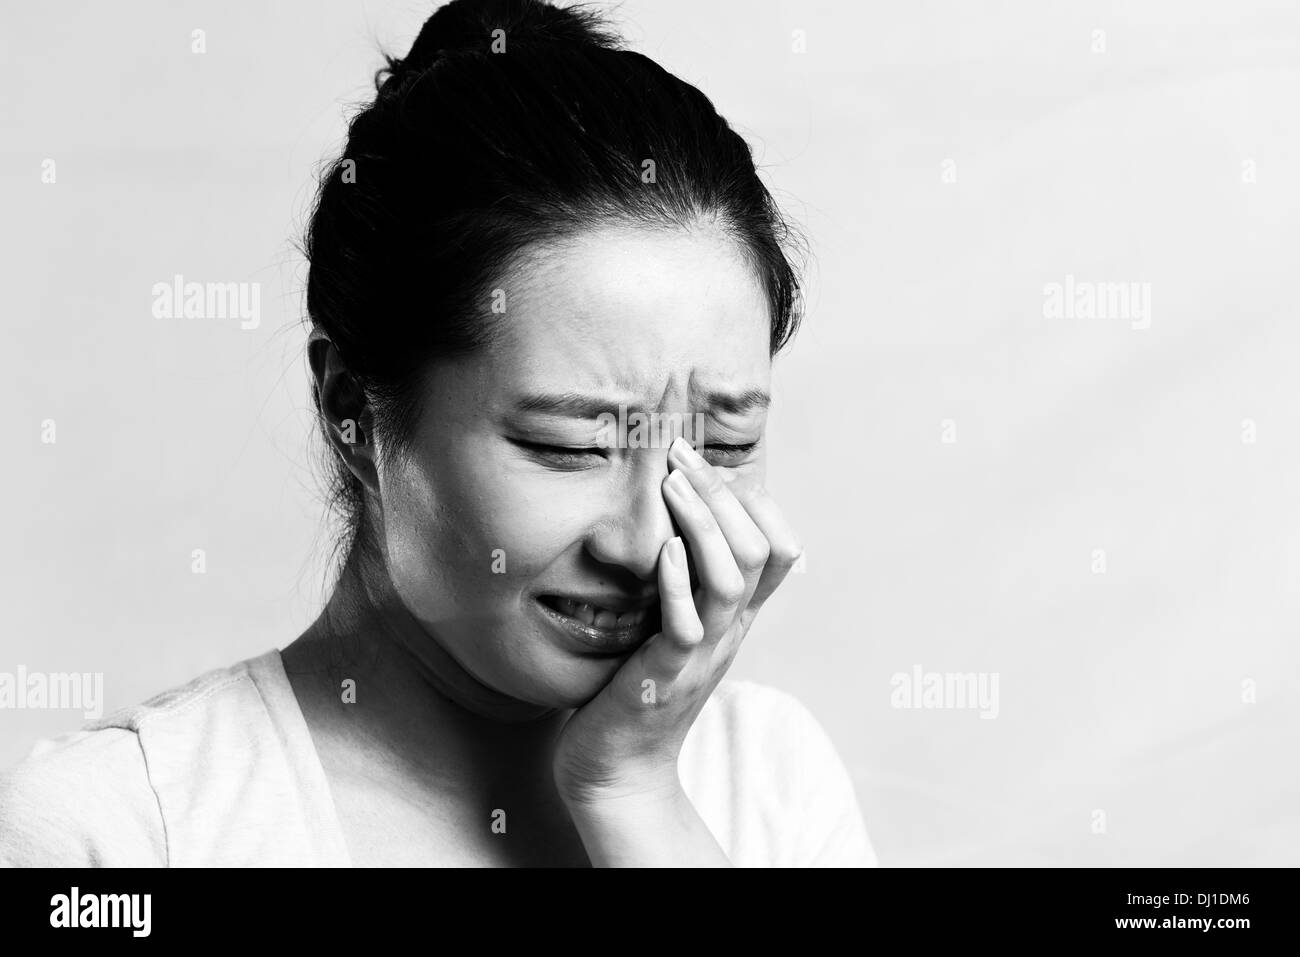 Portrait of pretty girl crying desperately black and white style